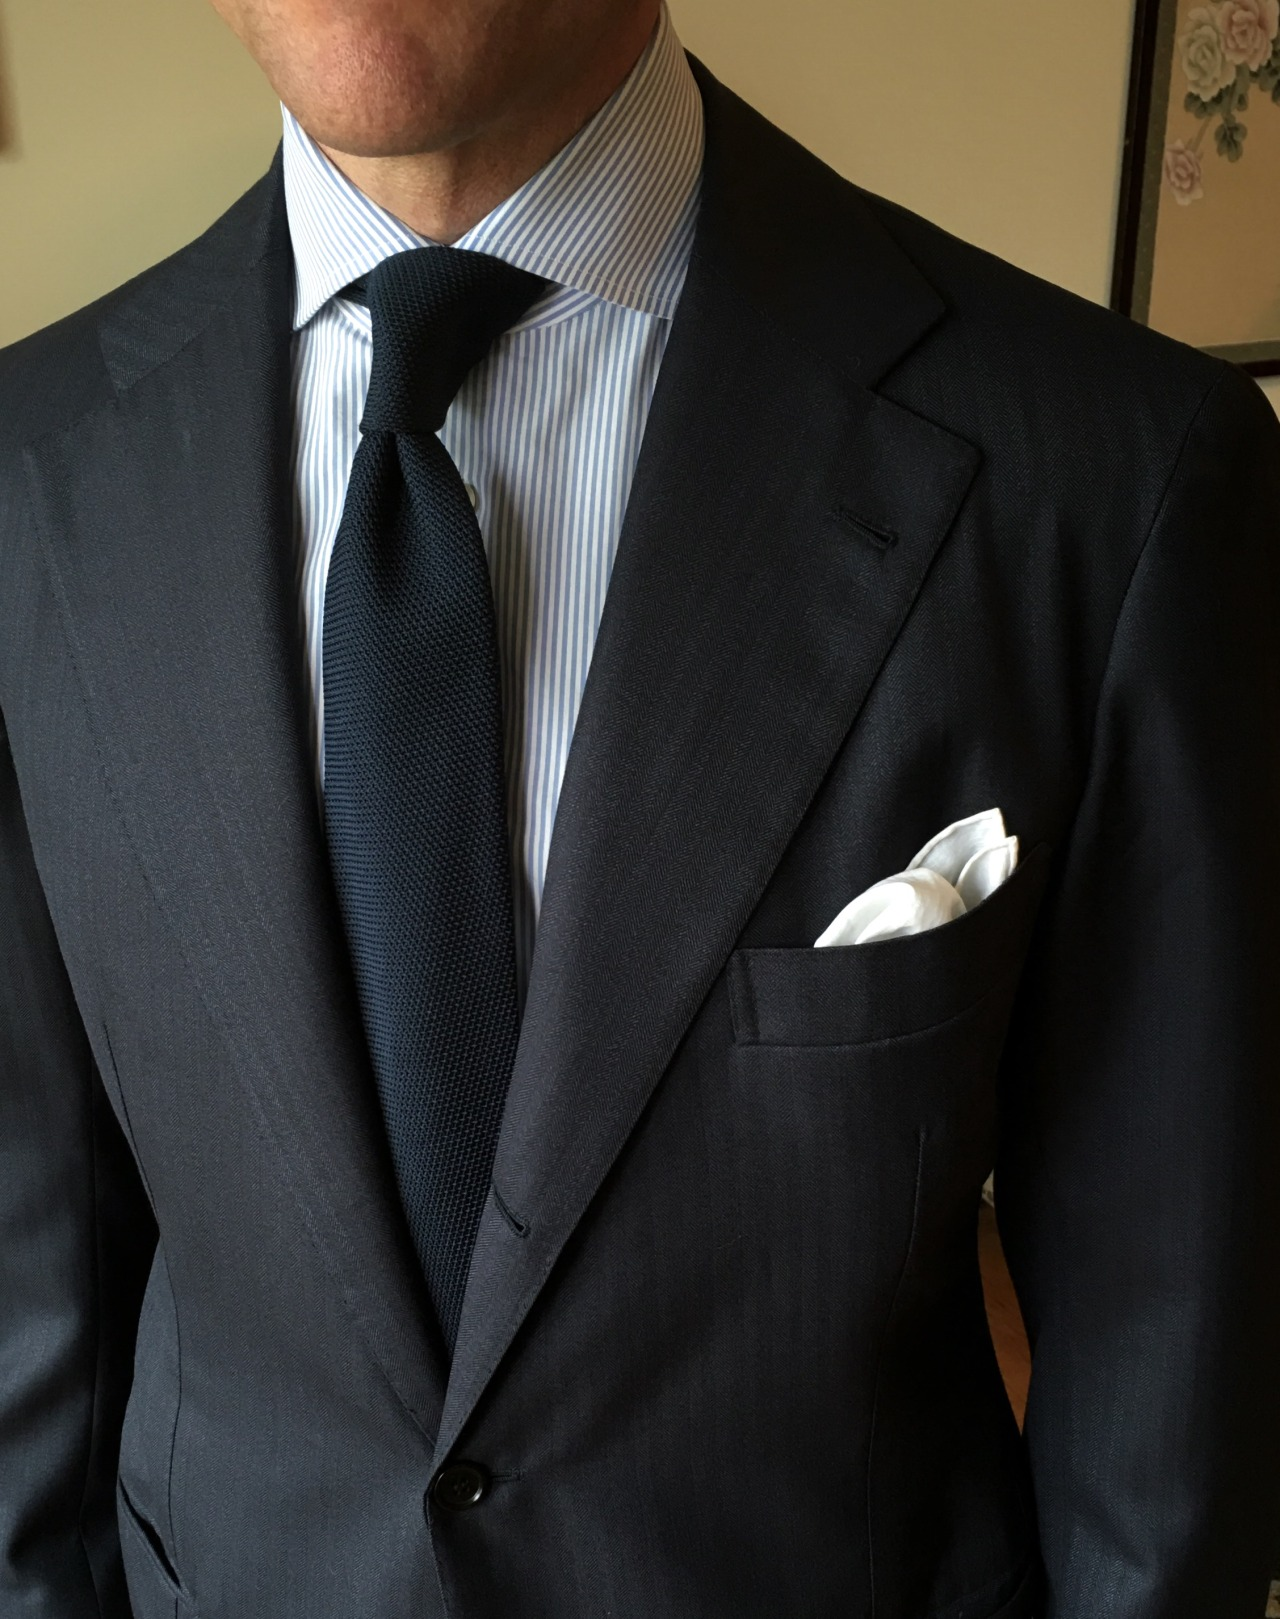 cb9a56e7f8cc It's no secret to anyone who's been reading our blog for a while, but a  solid-colored navy tie goes with everything. It's a useful reminder though  for ...